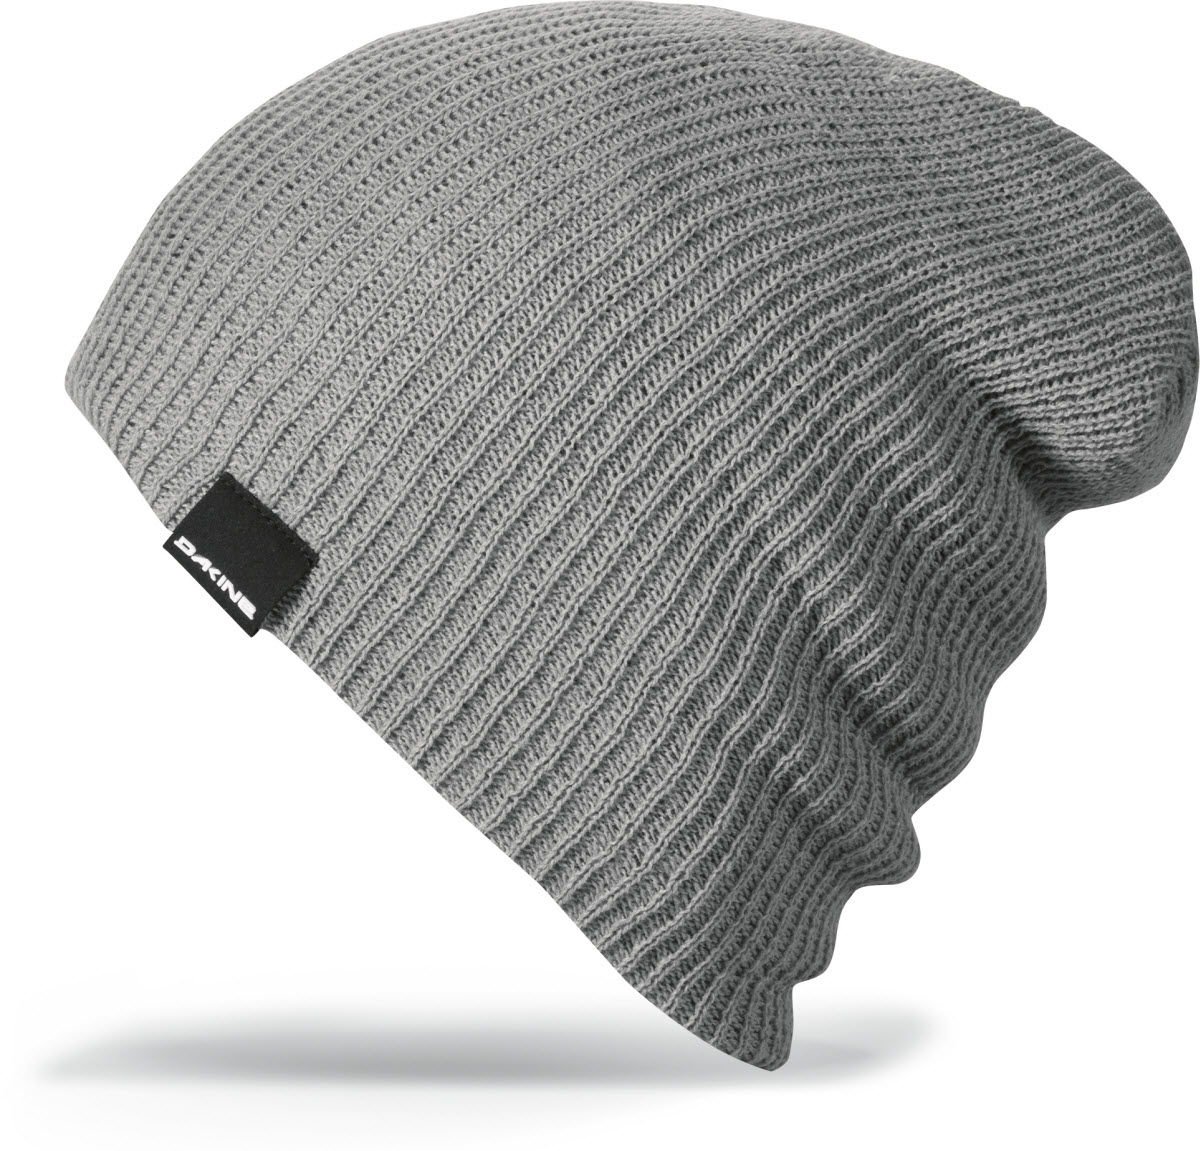 Product image of Dakine Beanie Tall Boy Hat Snowboard Ski Surf in Drizzle